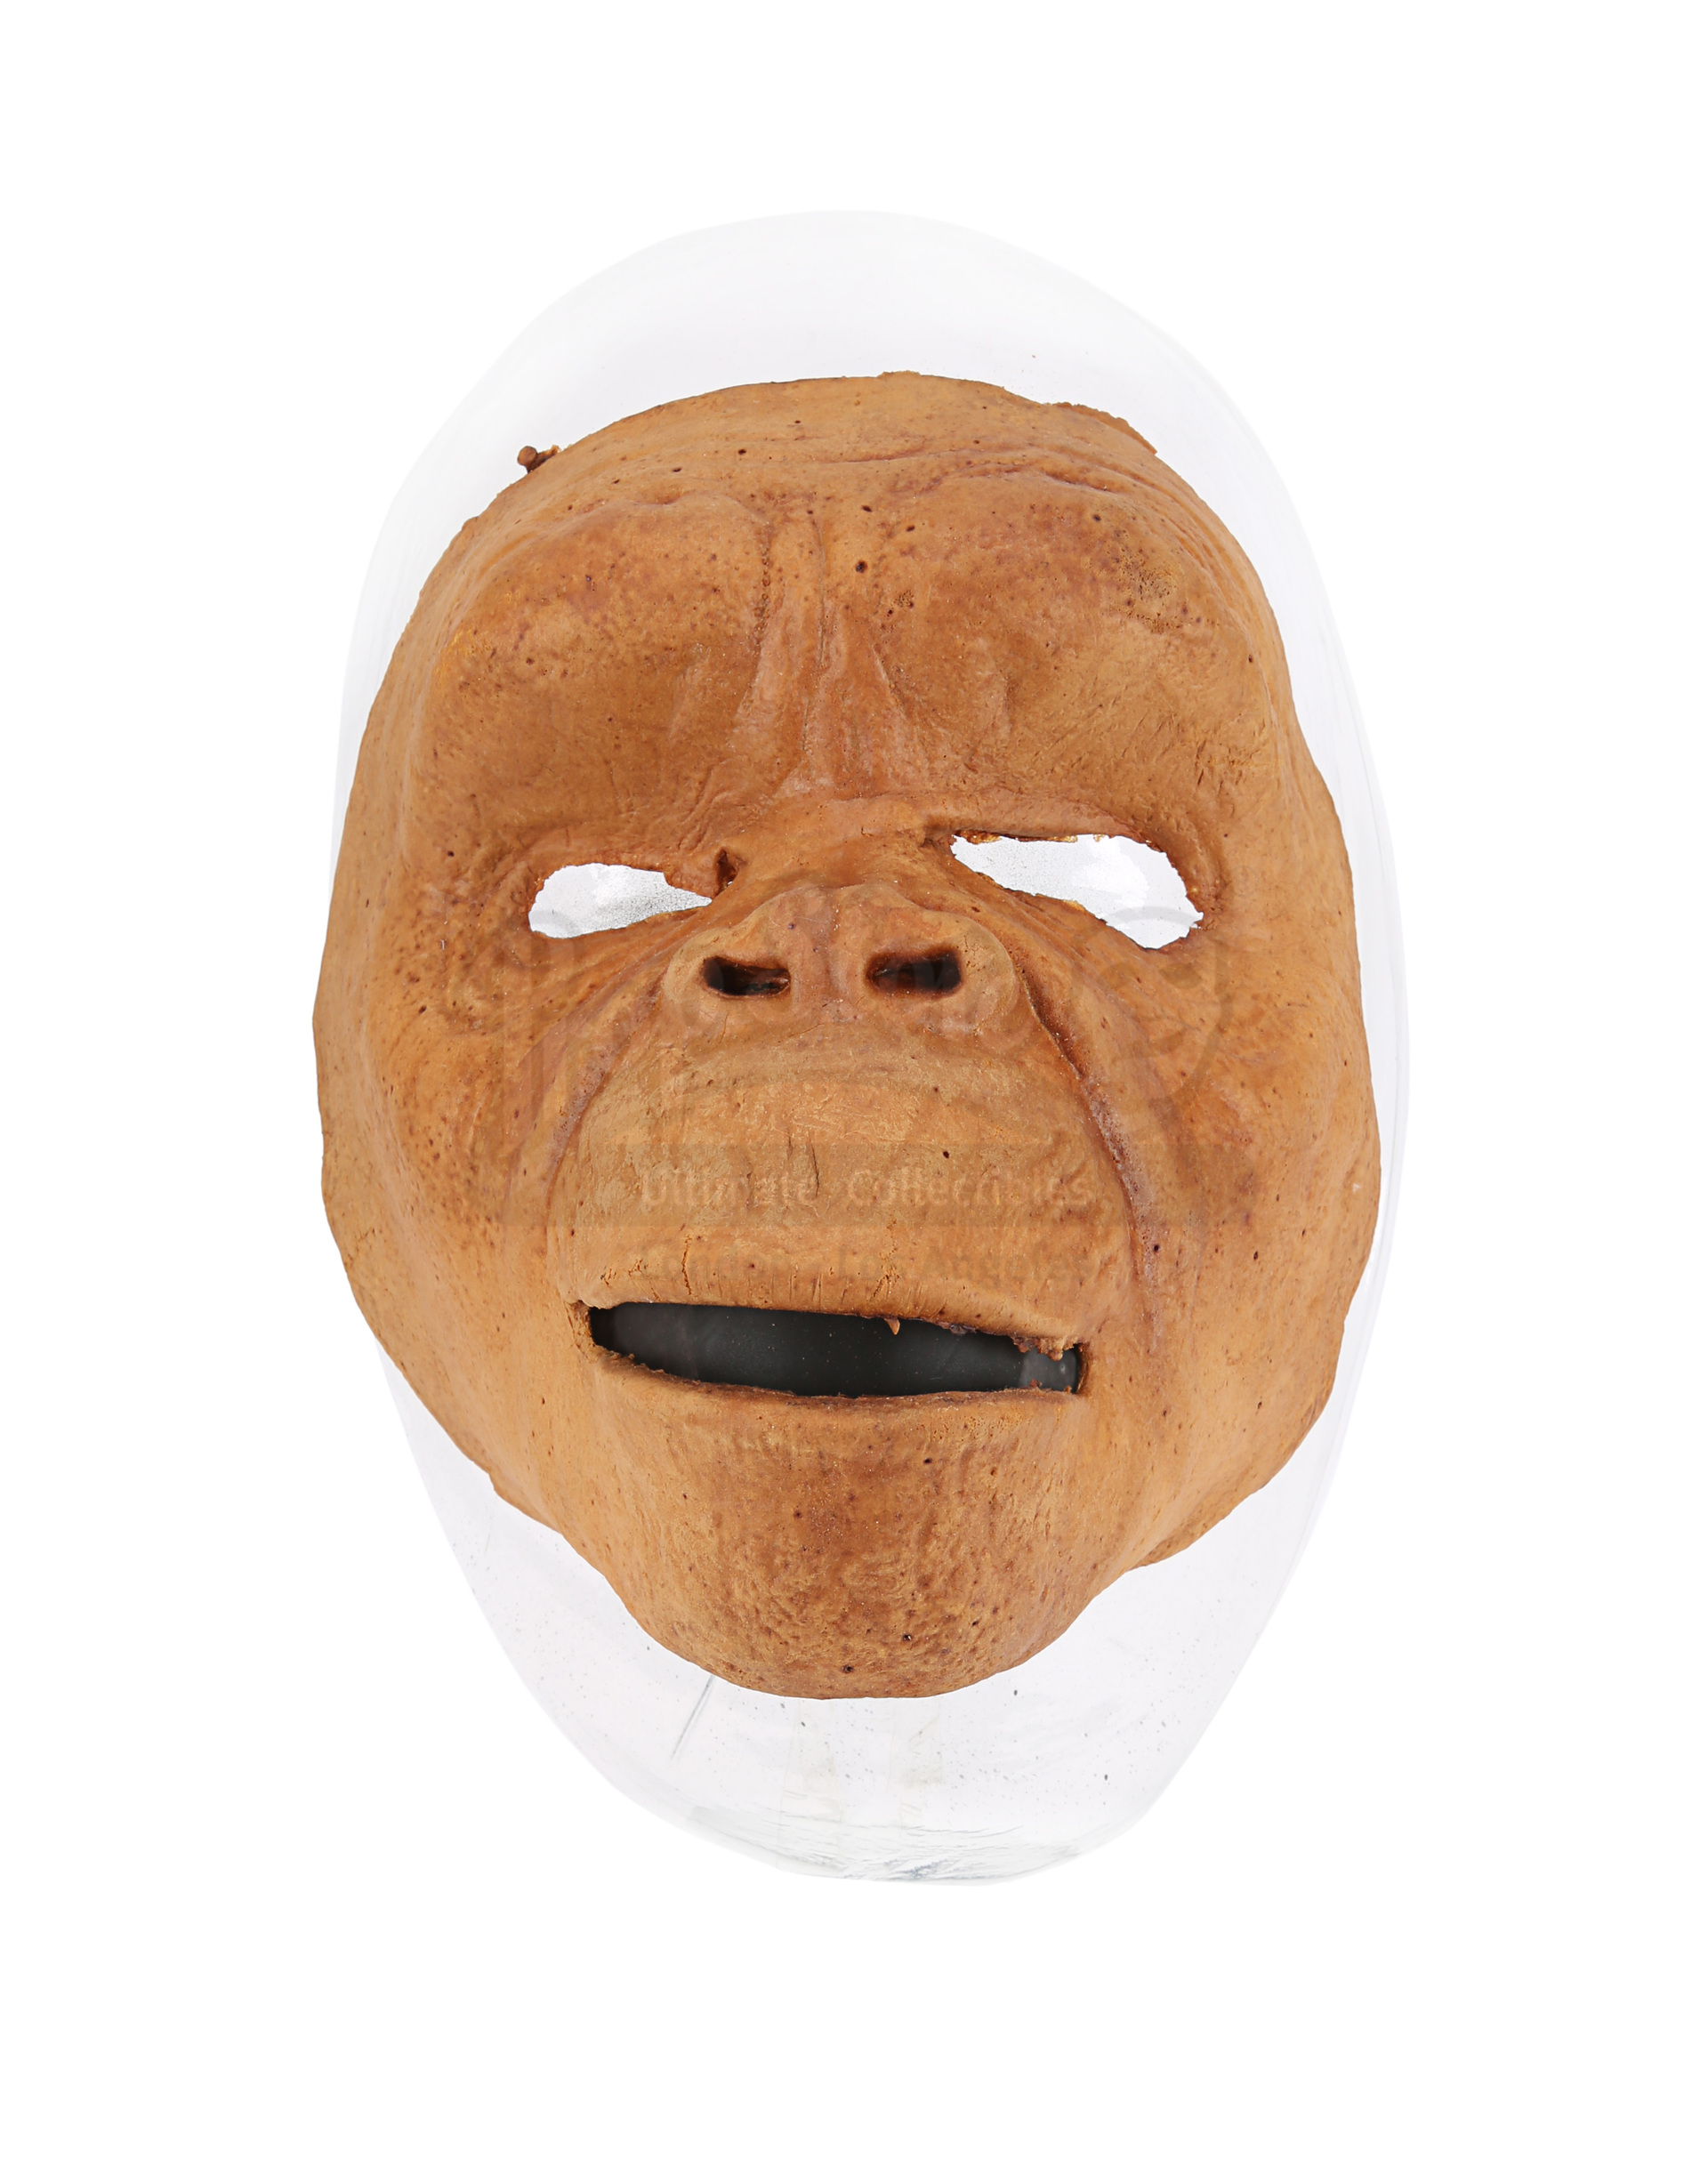 2001: A SPACE ODYSSEY (1968) - Dawn of Man Ape Mask - Image 2 of 12